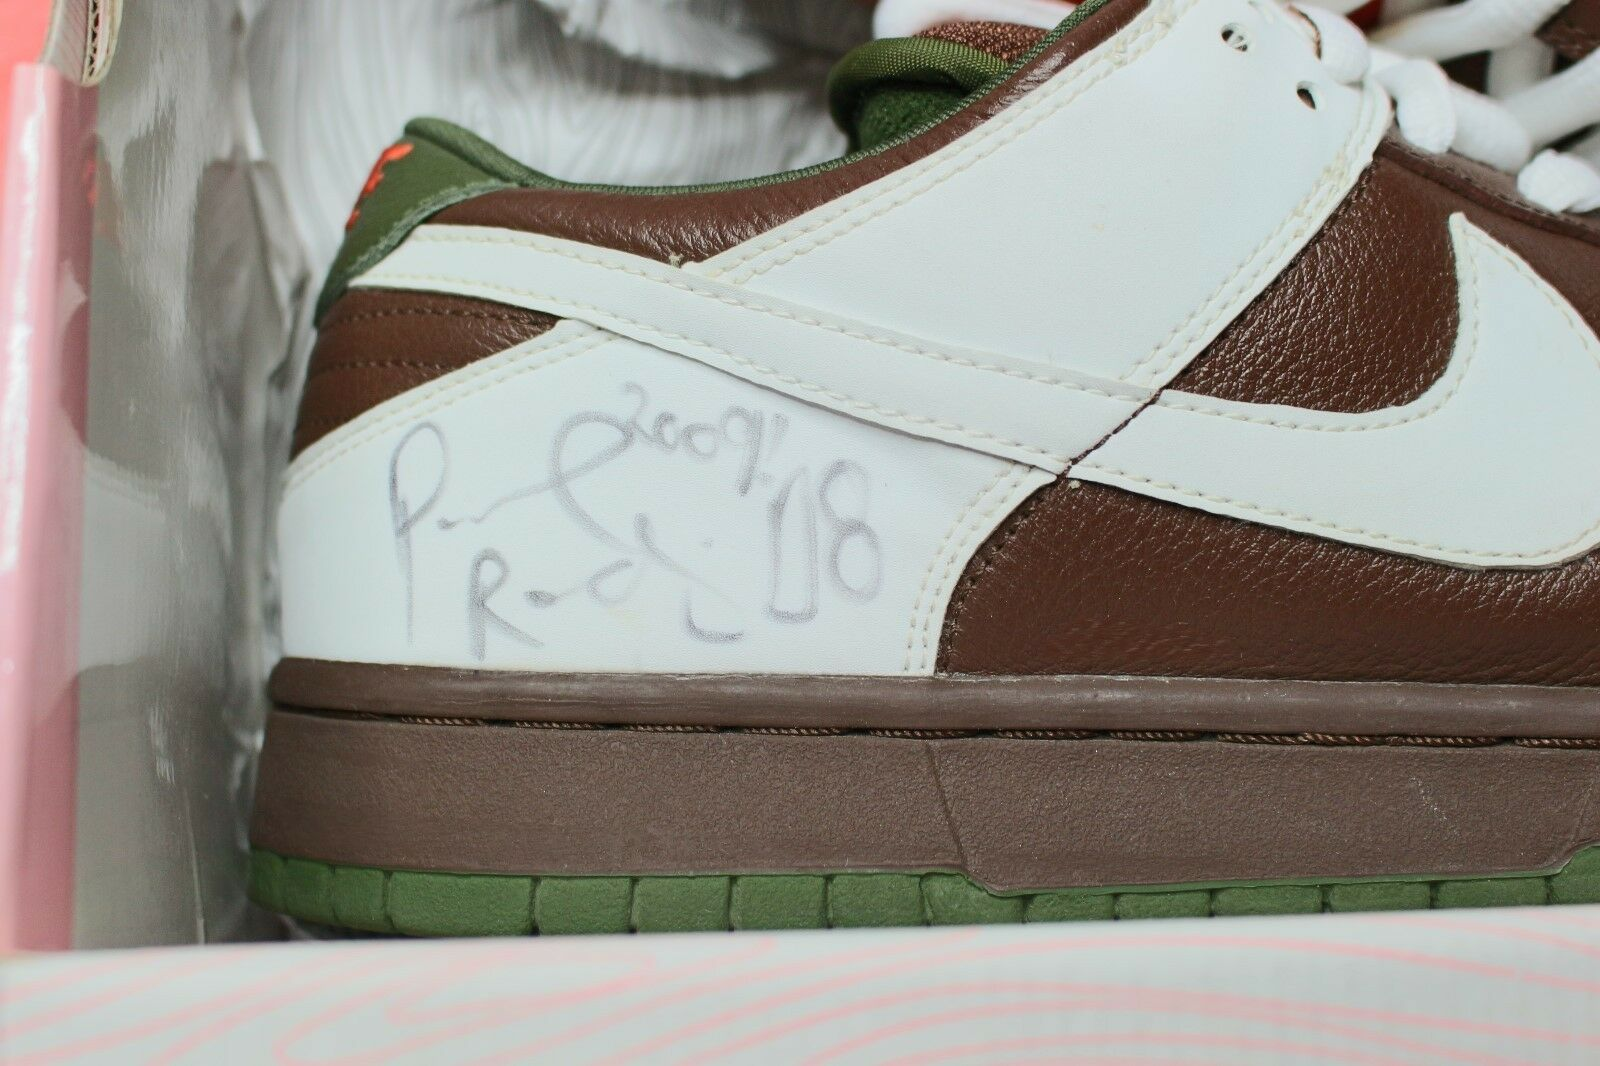 Nike SB Dunk Low Signed by Paul Rodriguez P Rod